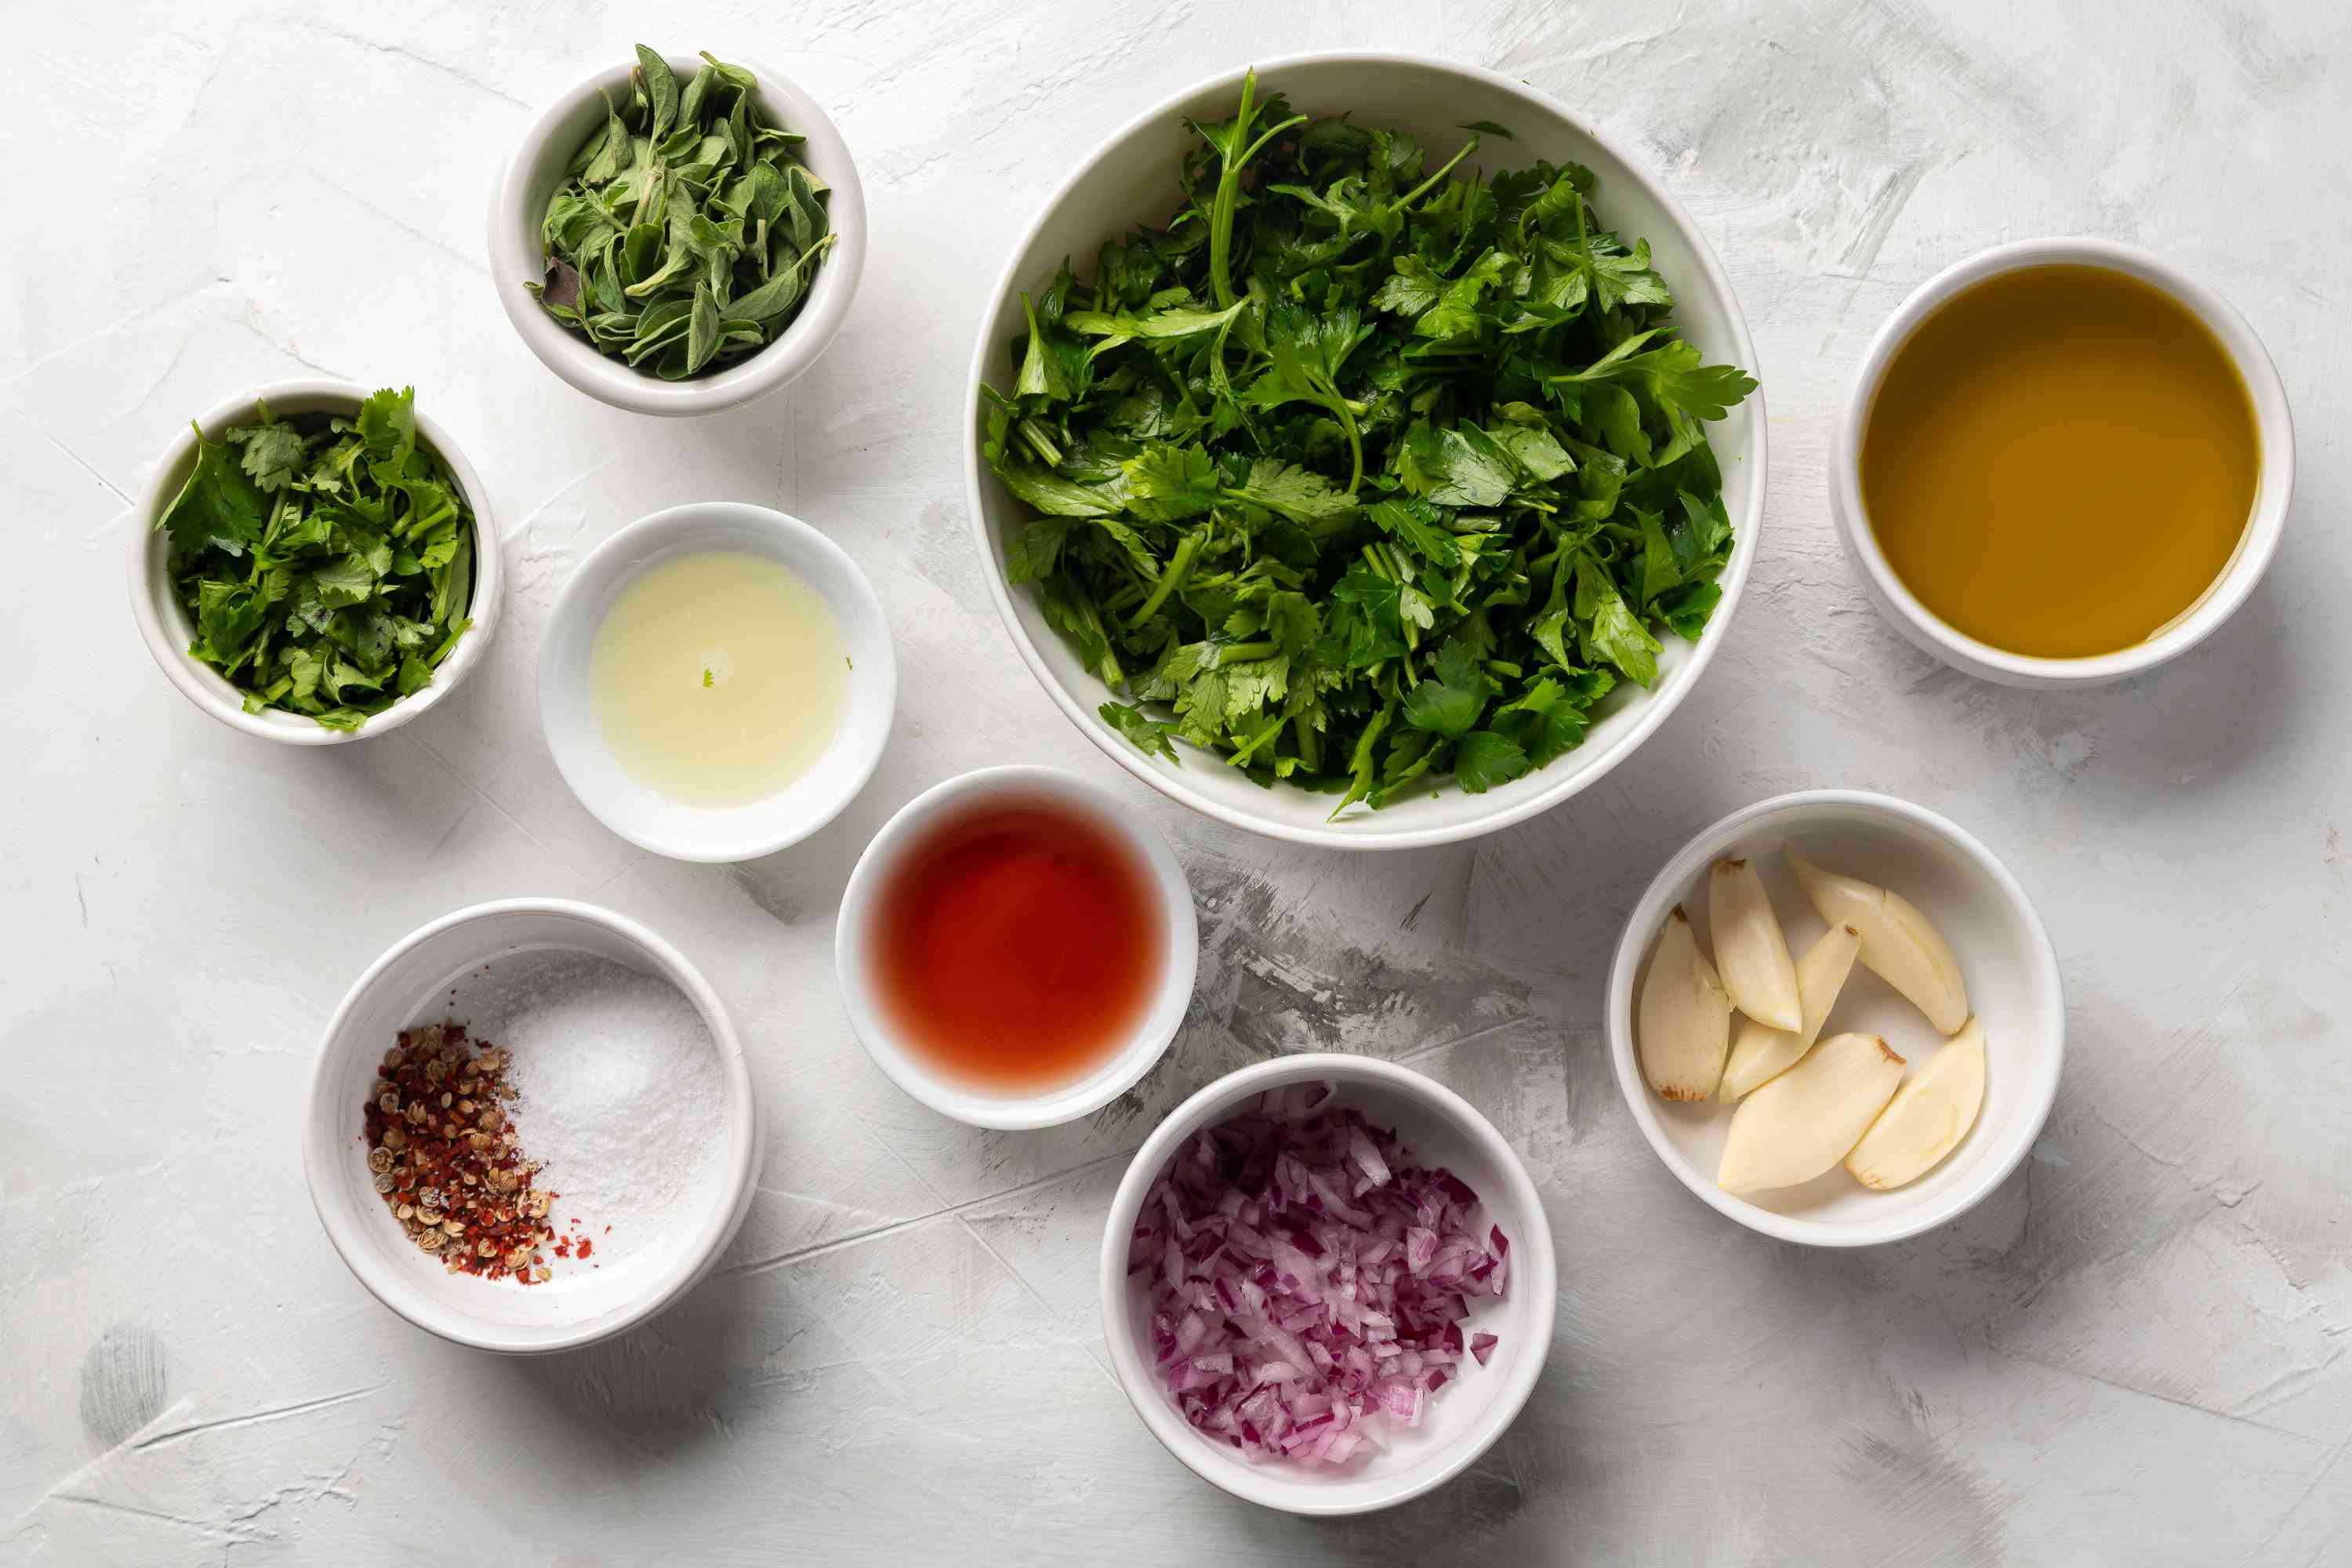 Argentinian-style chimichurri sauce ingredients